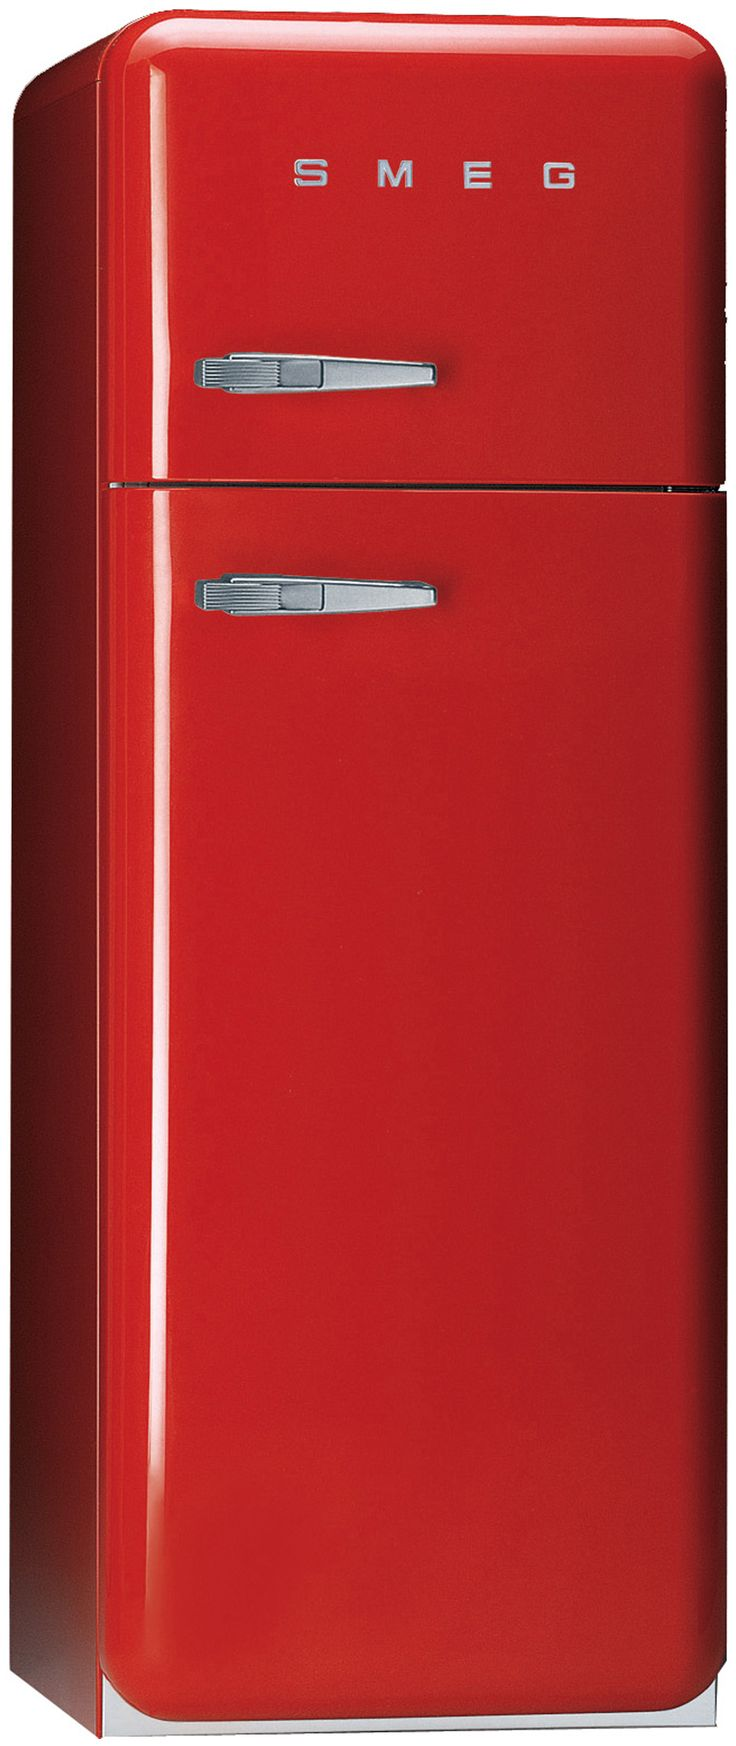 Smeg- retrò line.Red